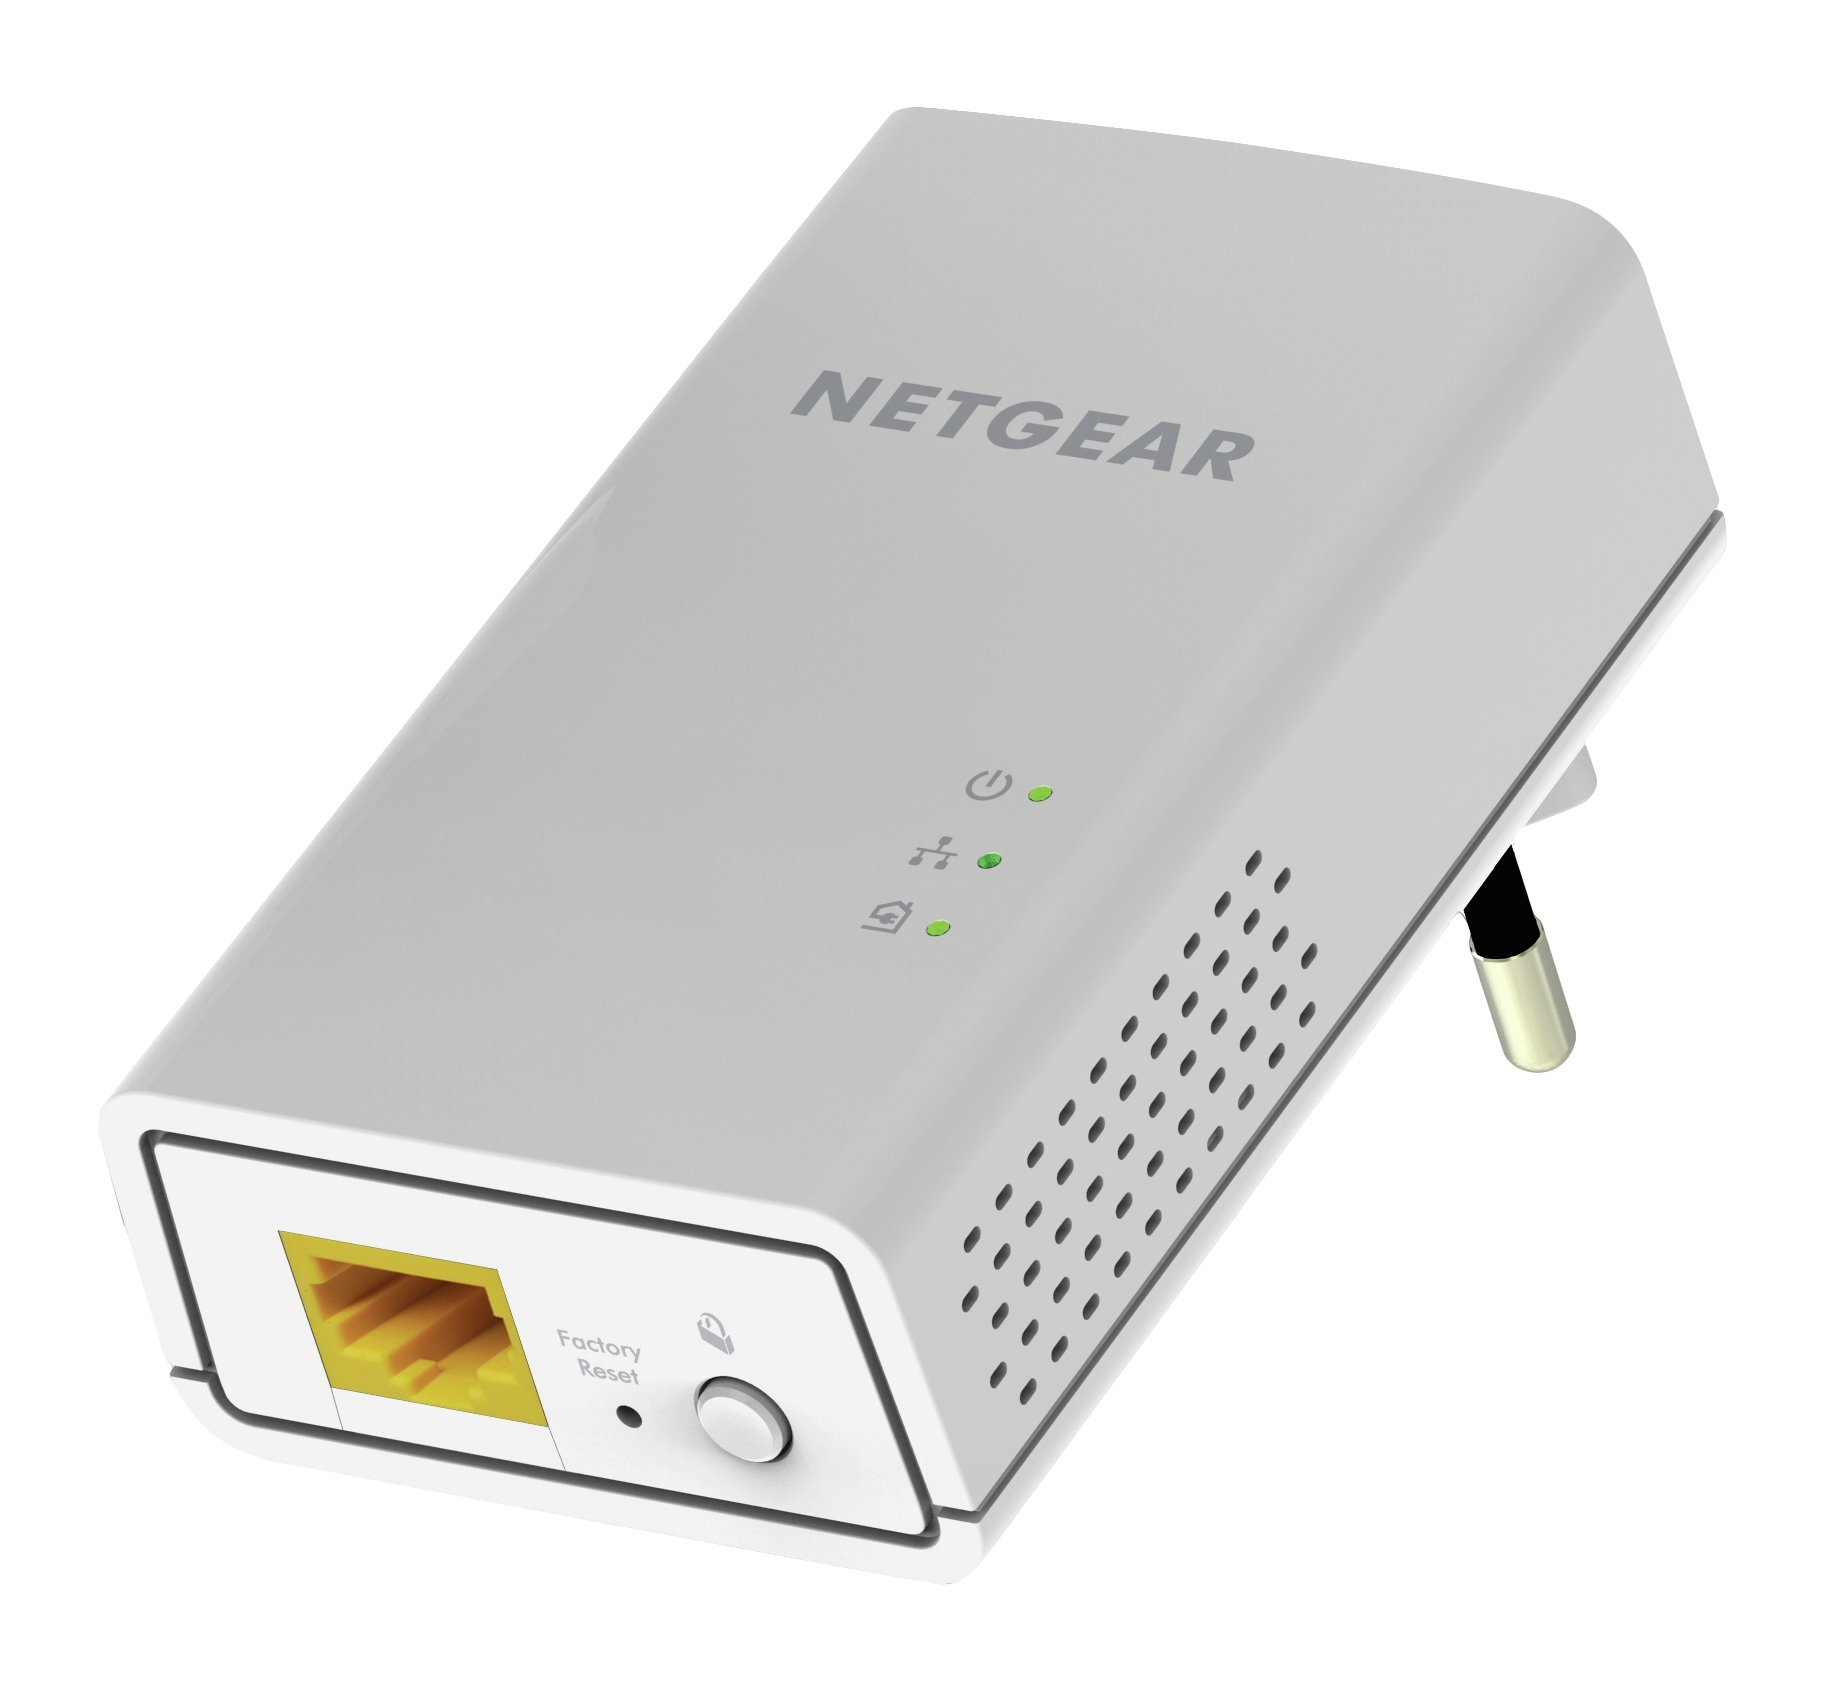 NETGEAR Powerline 1000 Mbps, 1 Gigabit Port (PL1000-100PAS)